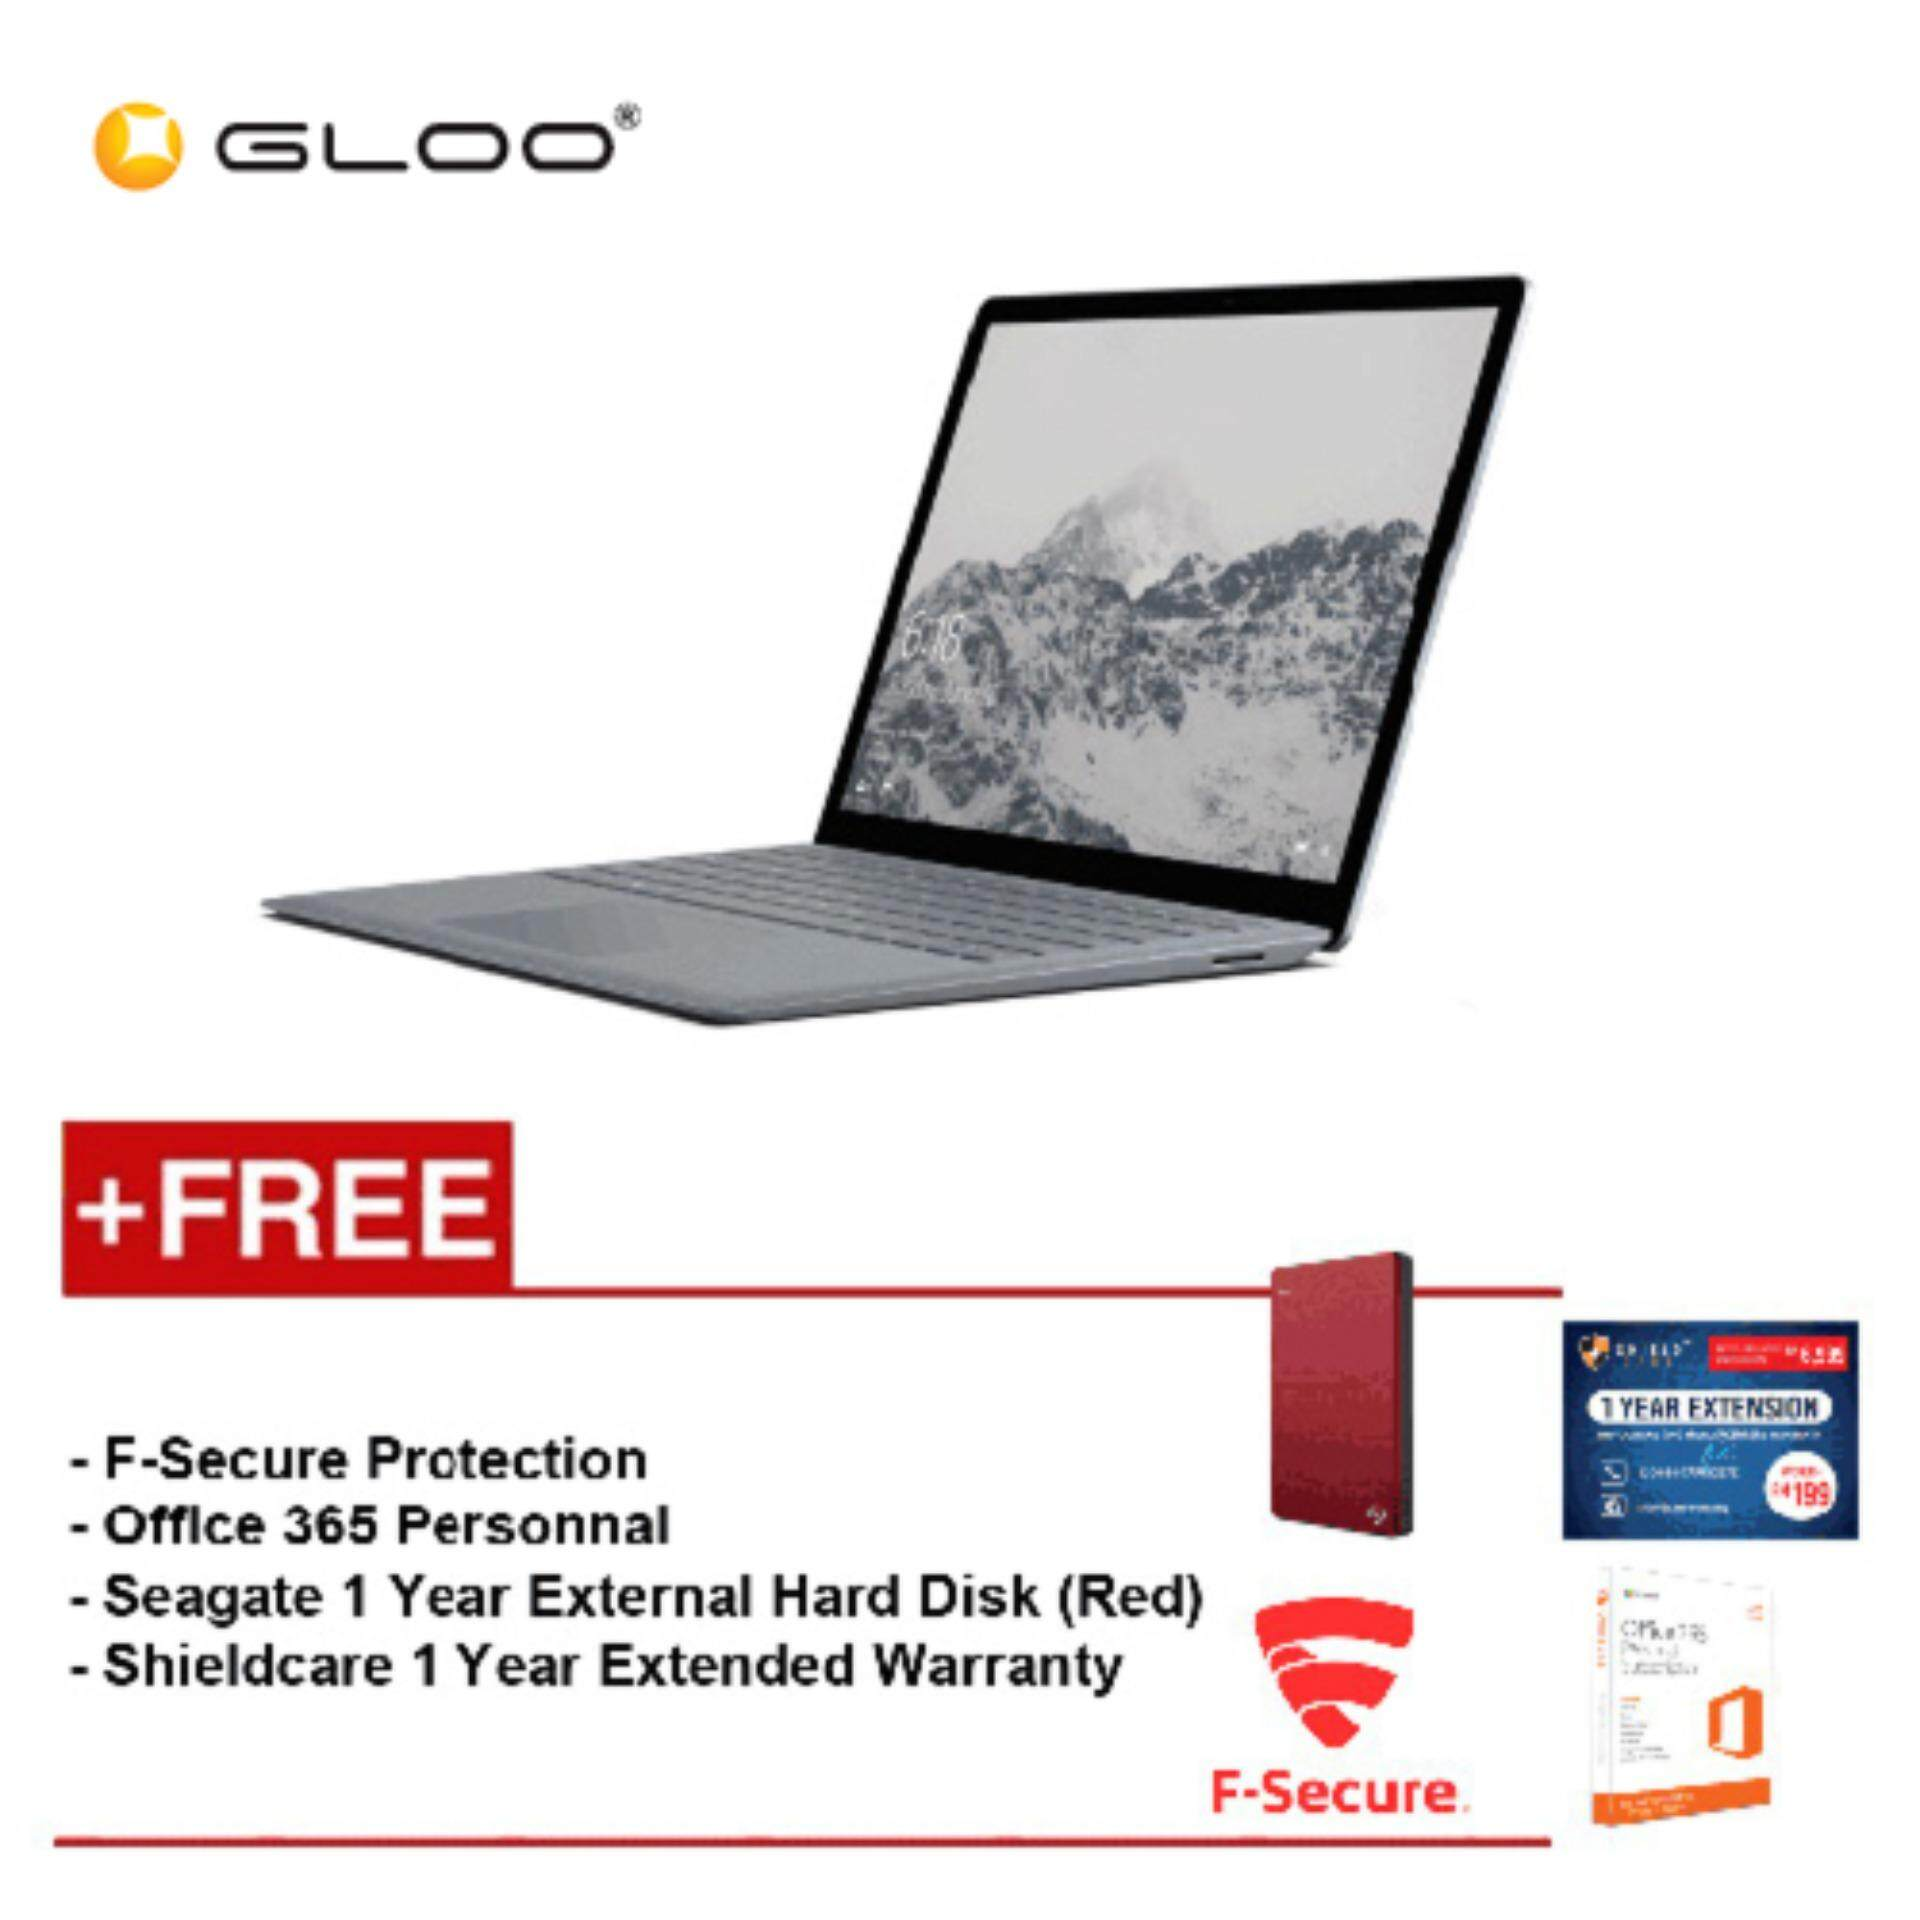 Surface Laptop Core i5/8GB RAM - 256GB + Shield Care 1Year Extended Warranty + F-Secure End Point Protection + Office 365 Personal + Seagate 1TB Hard Disk Drive (Red) Malaysia